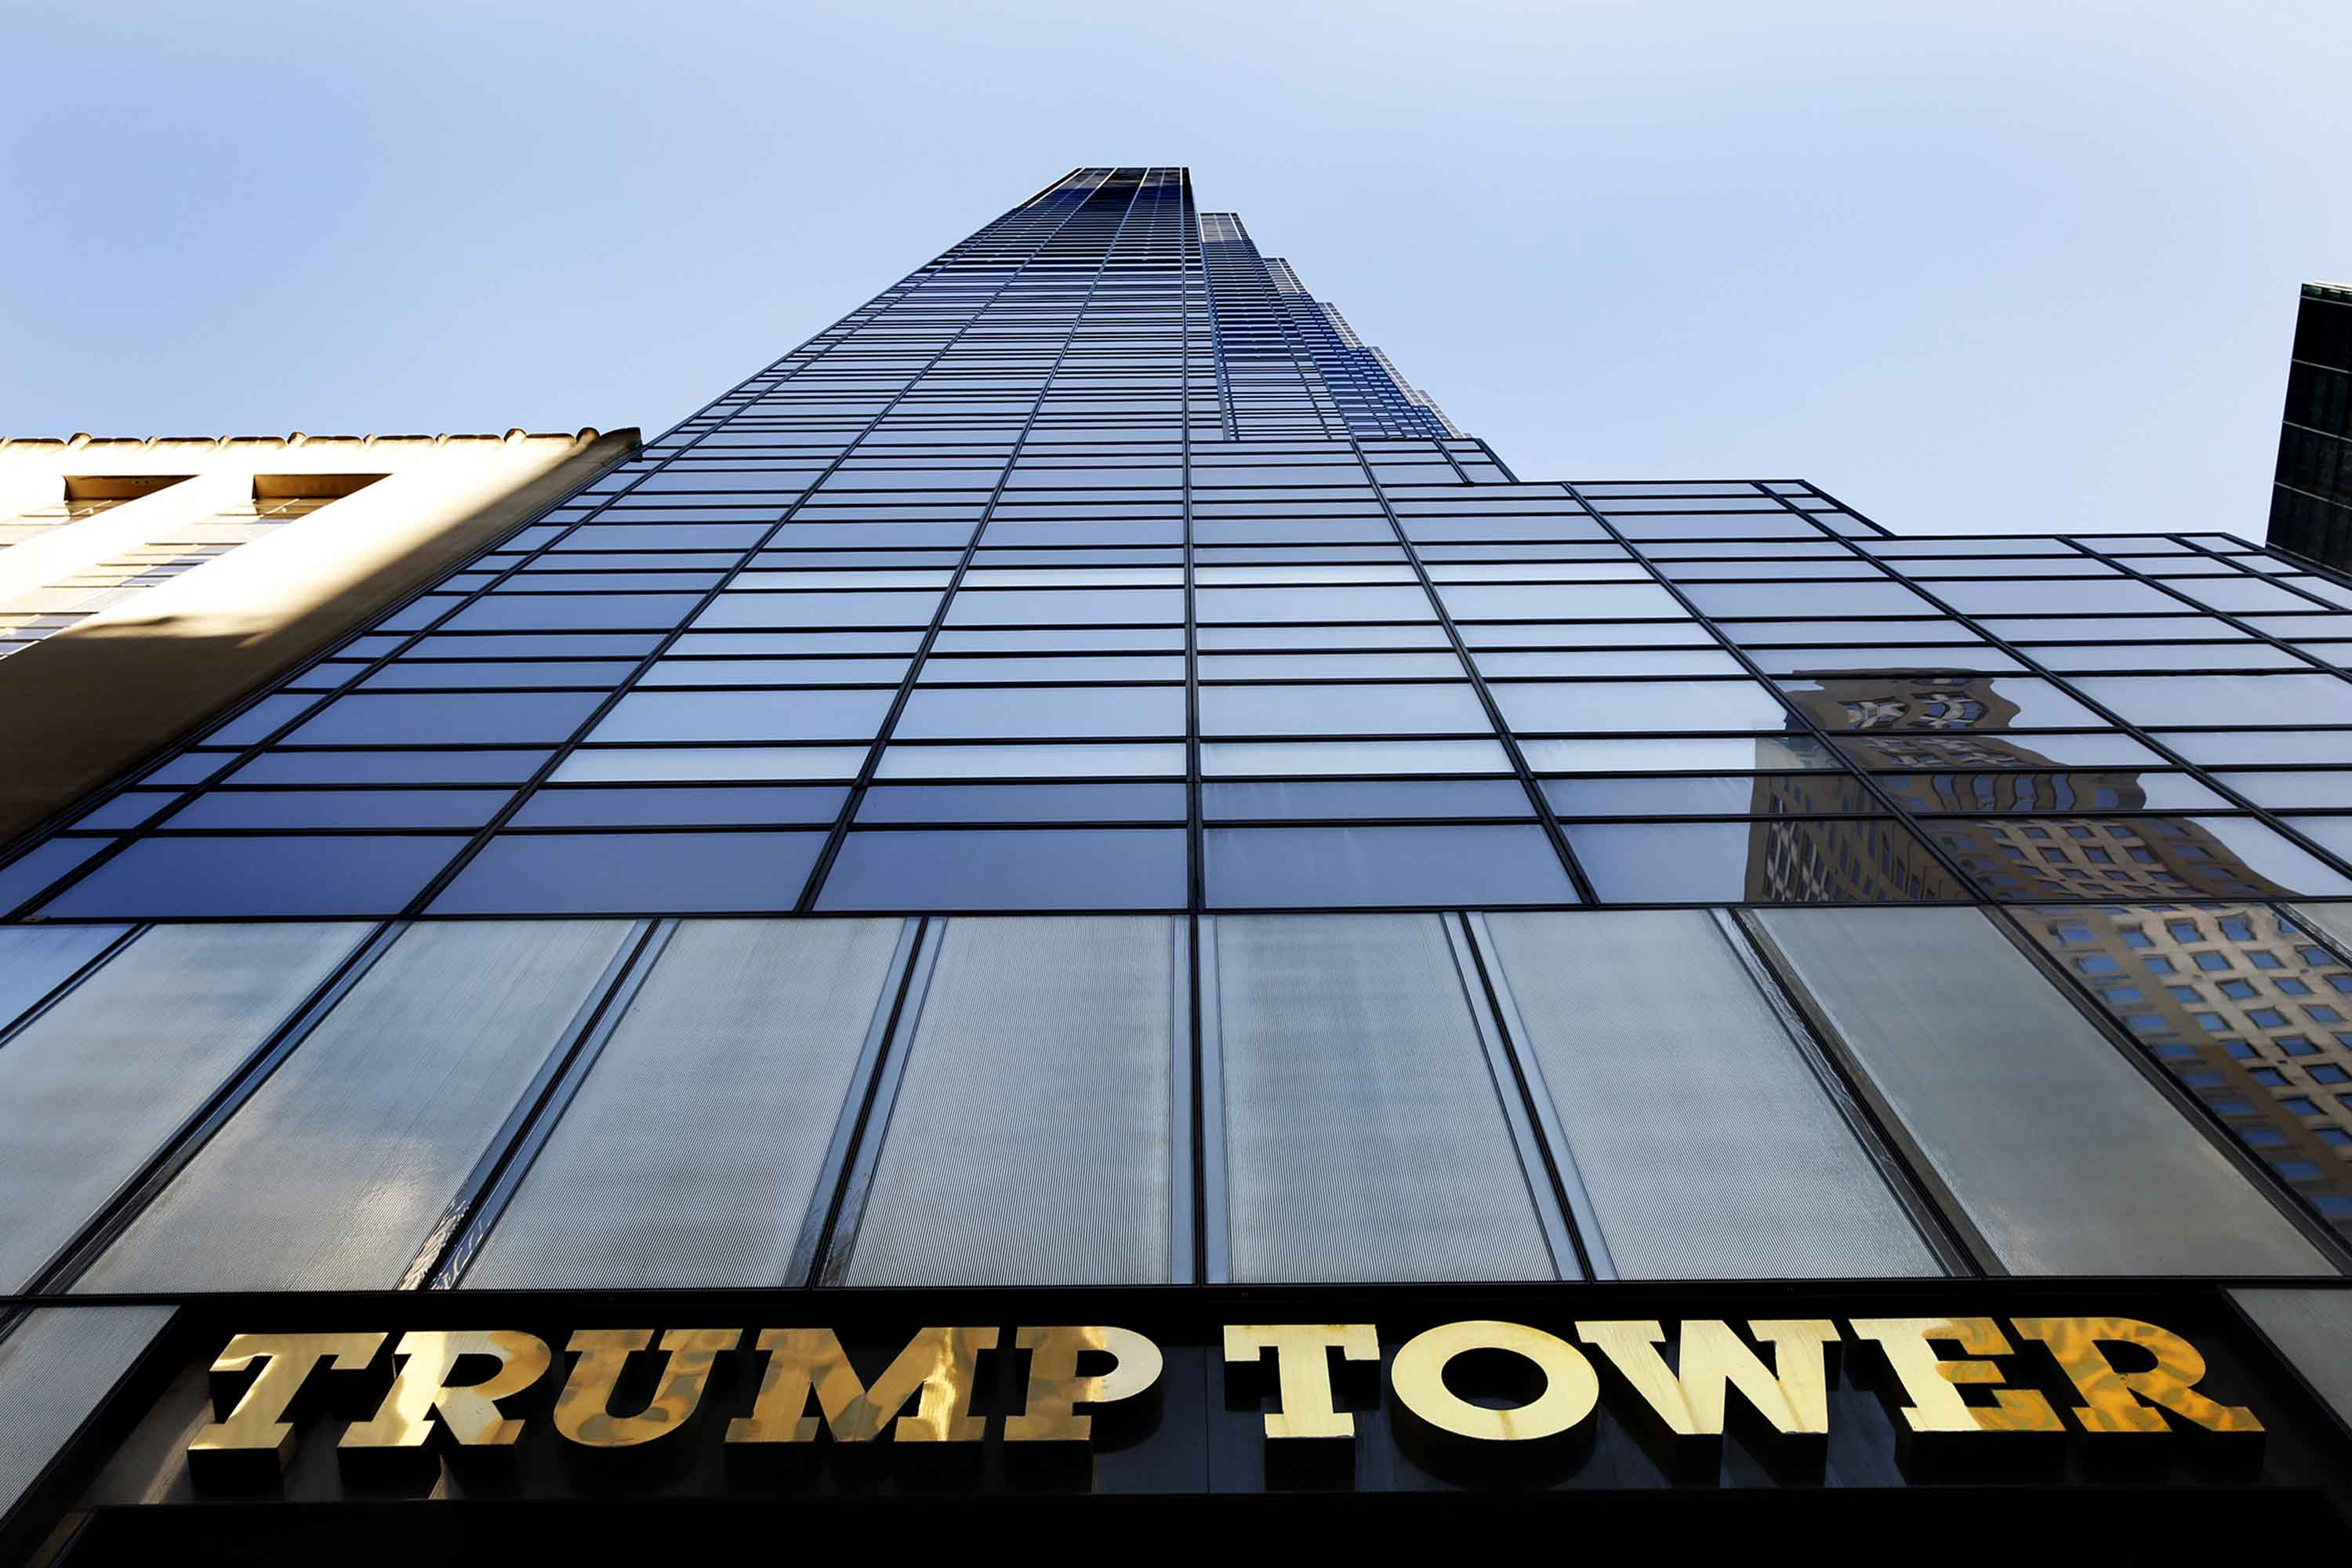 Donald Trump's name is on the Manhattan building at 725 5th Ave., New York, in an August 2014 file image (Carolyn Cole/Los Angeles Times/TNS)